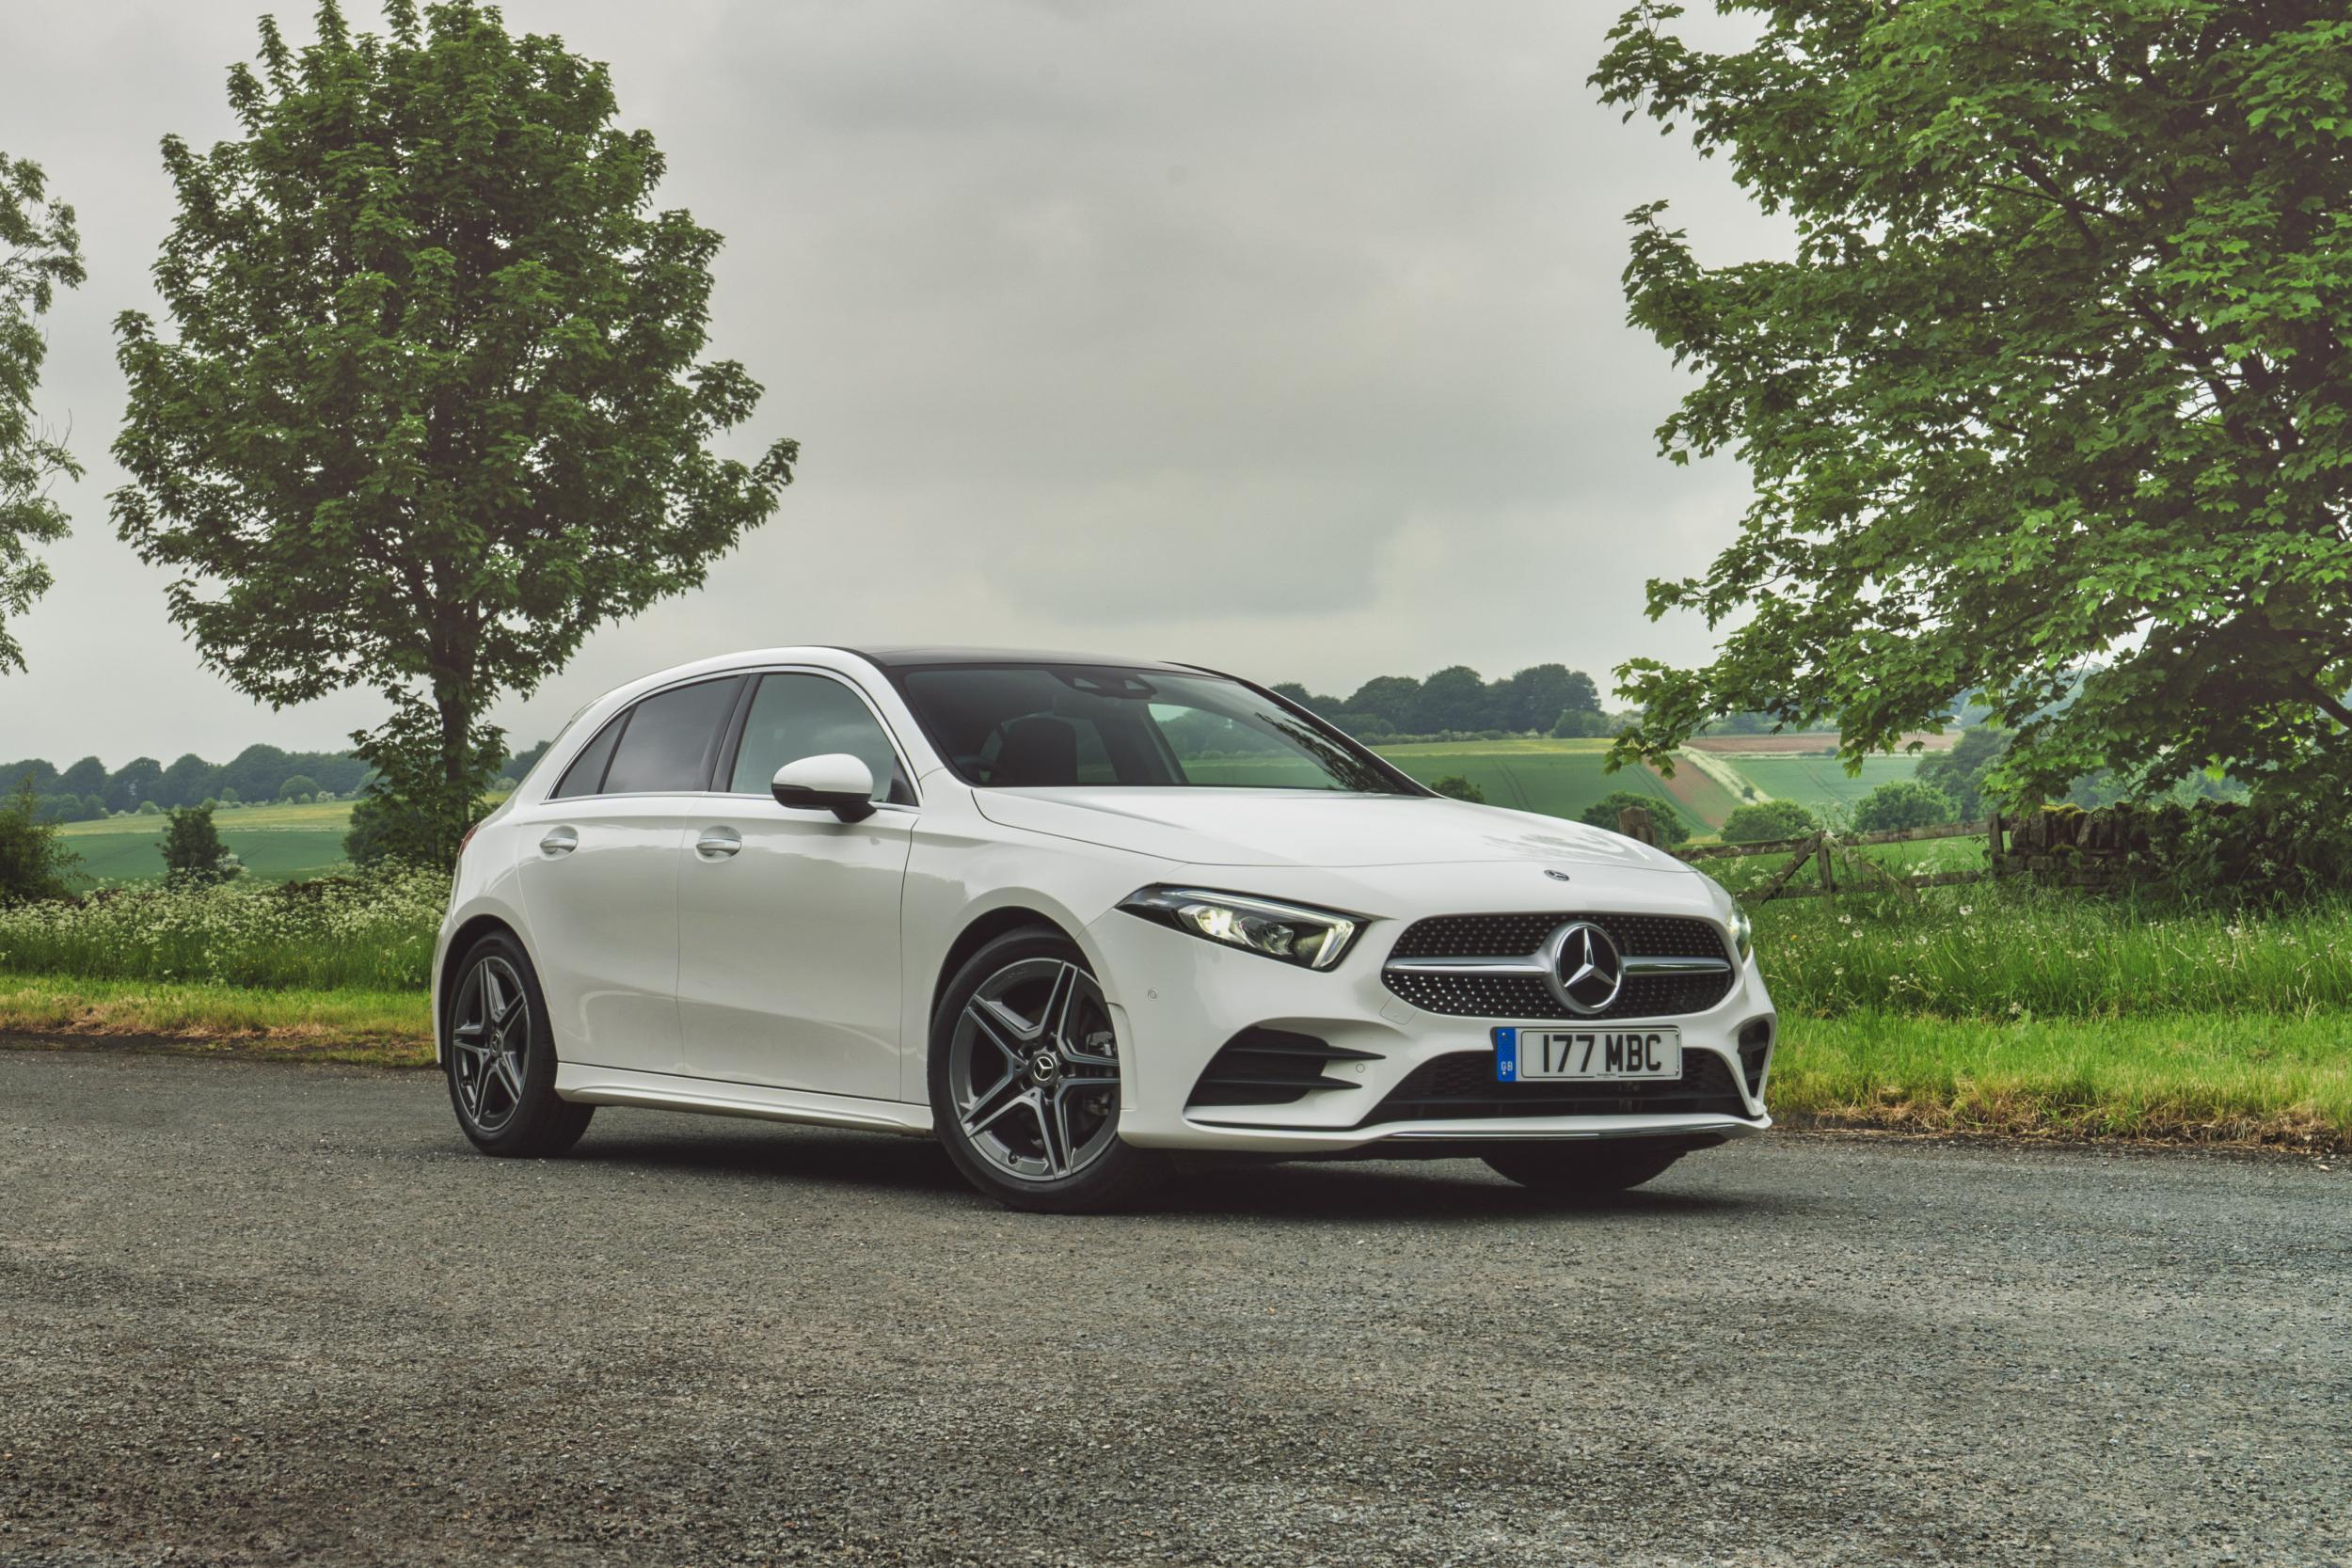 Mercedes-Benz A-Class review: Improvements can't justify paying a premium |  The Independent